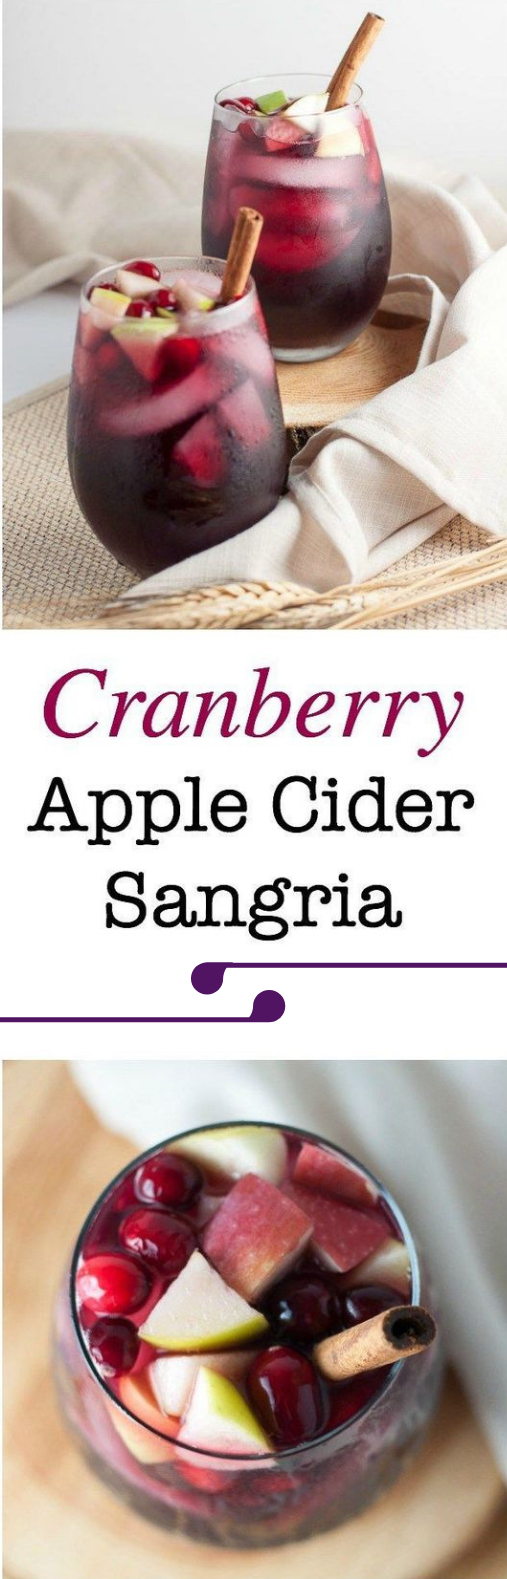 CRANBERRY APPLE CIDER SANGRIA #sangria #drink